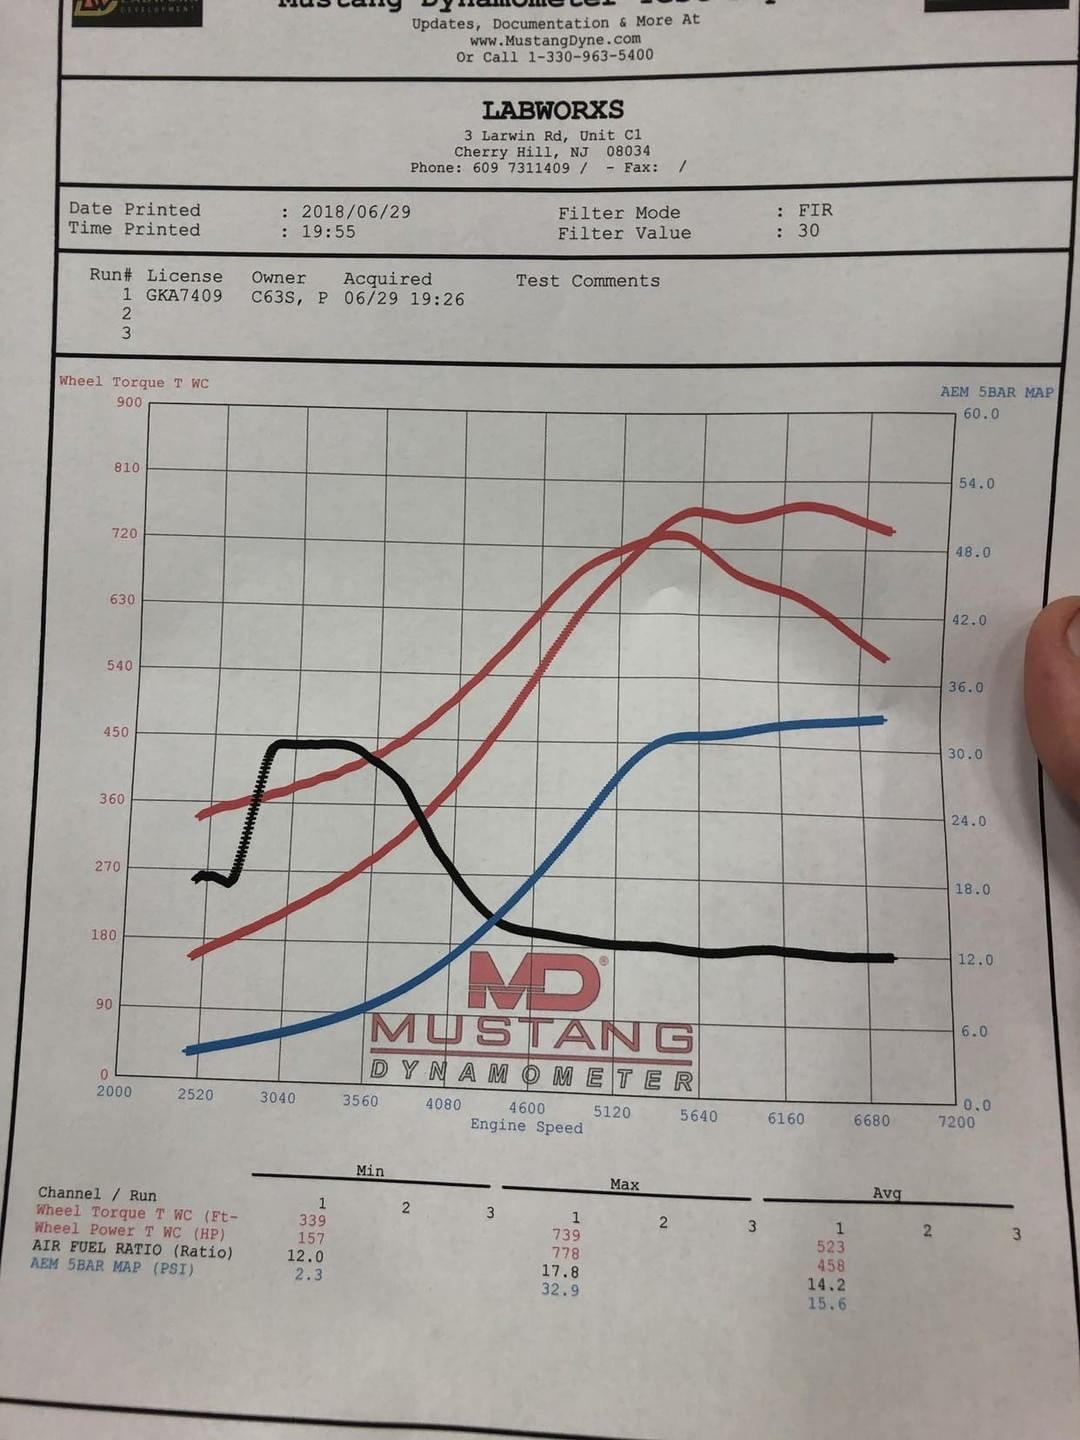 Mercedes-Benz C63 AMG Dyno Graph Results